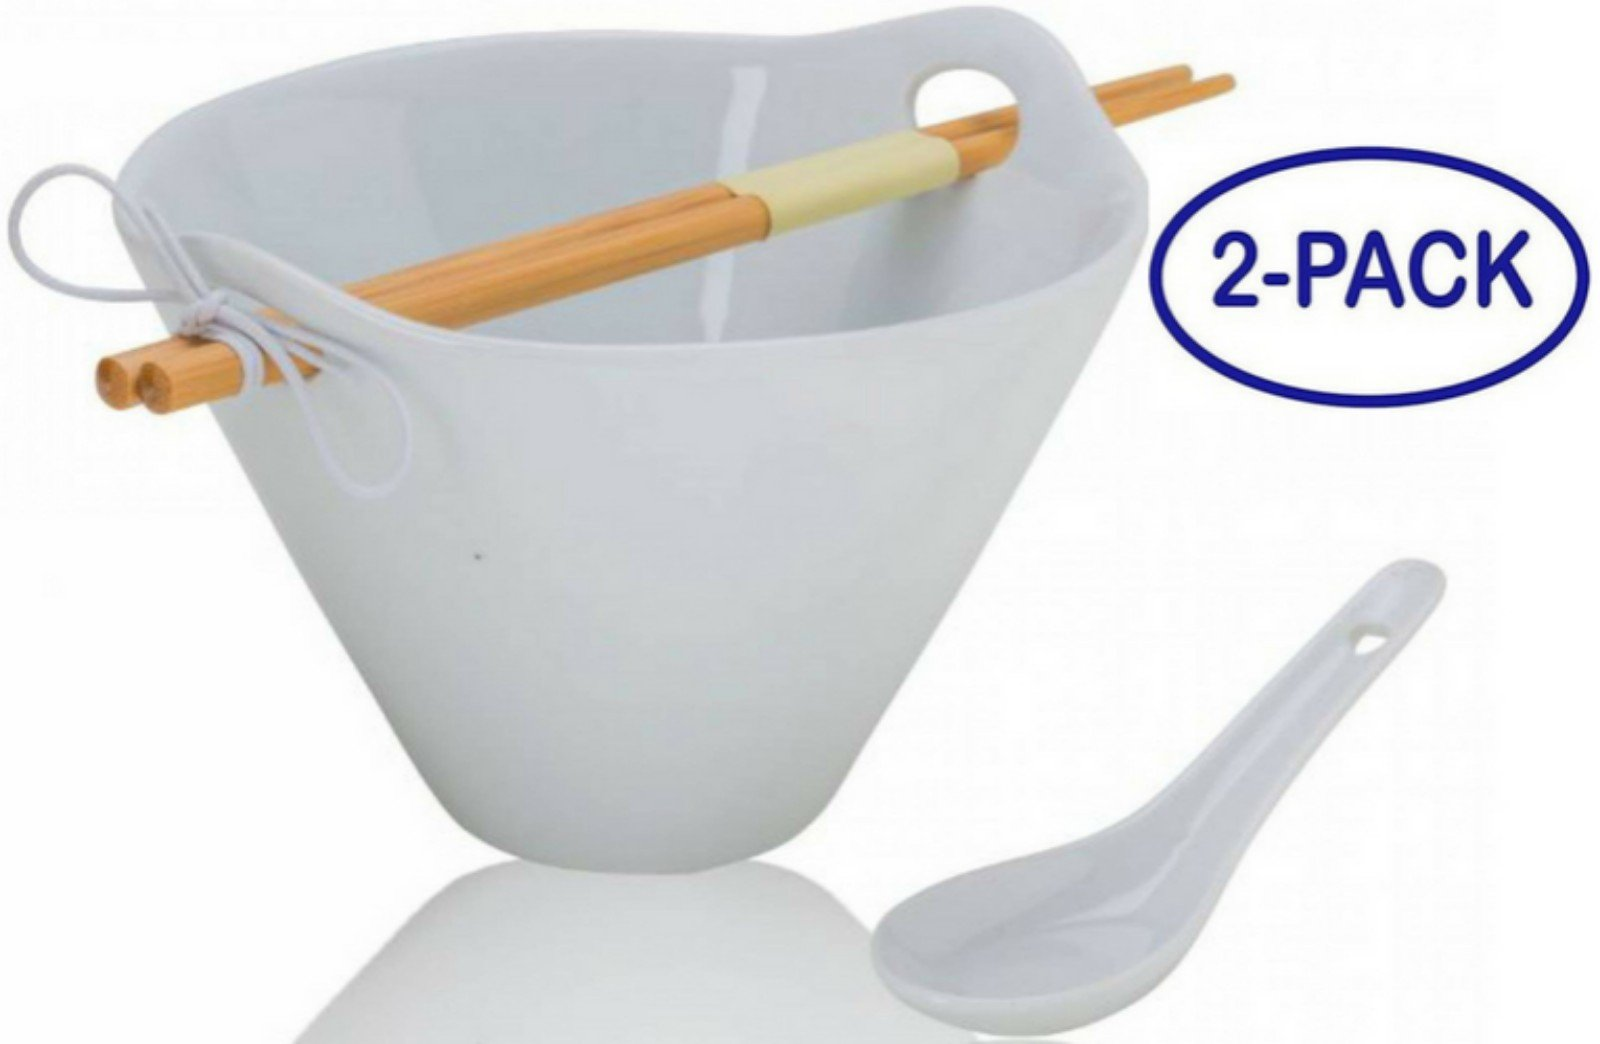 Tasse Verre Porcelain Ramen Noodle Soup Bowl with Bamboo Chopsticks and Ceramic Spoon (20 Ounce Bowl)- White - 2-Pack